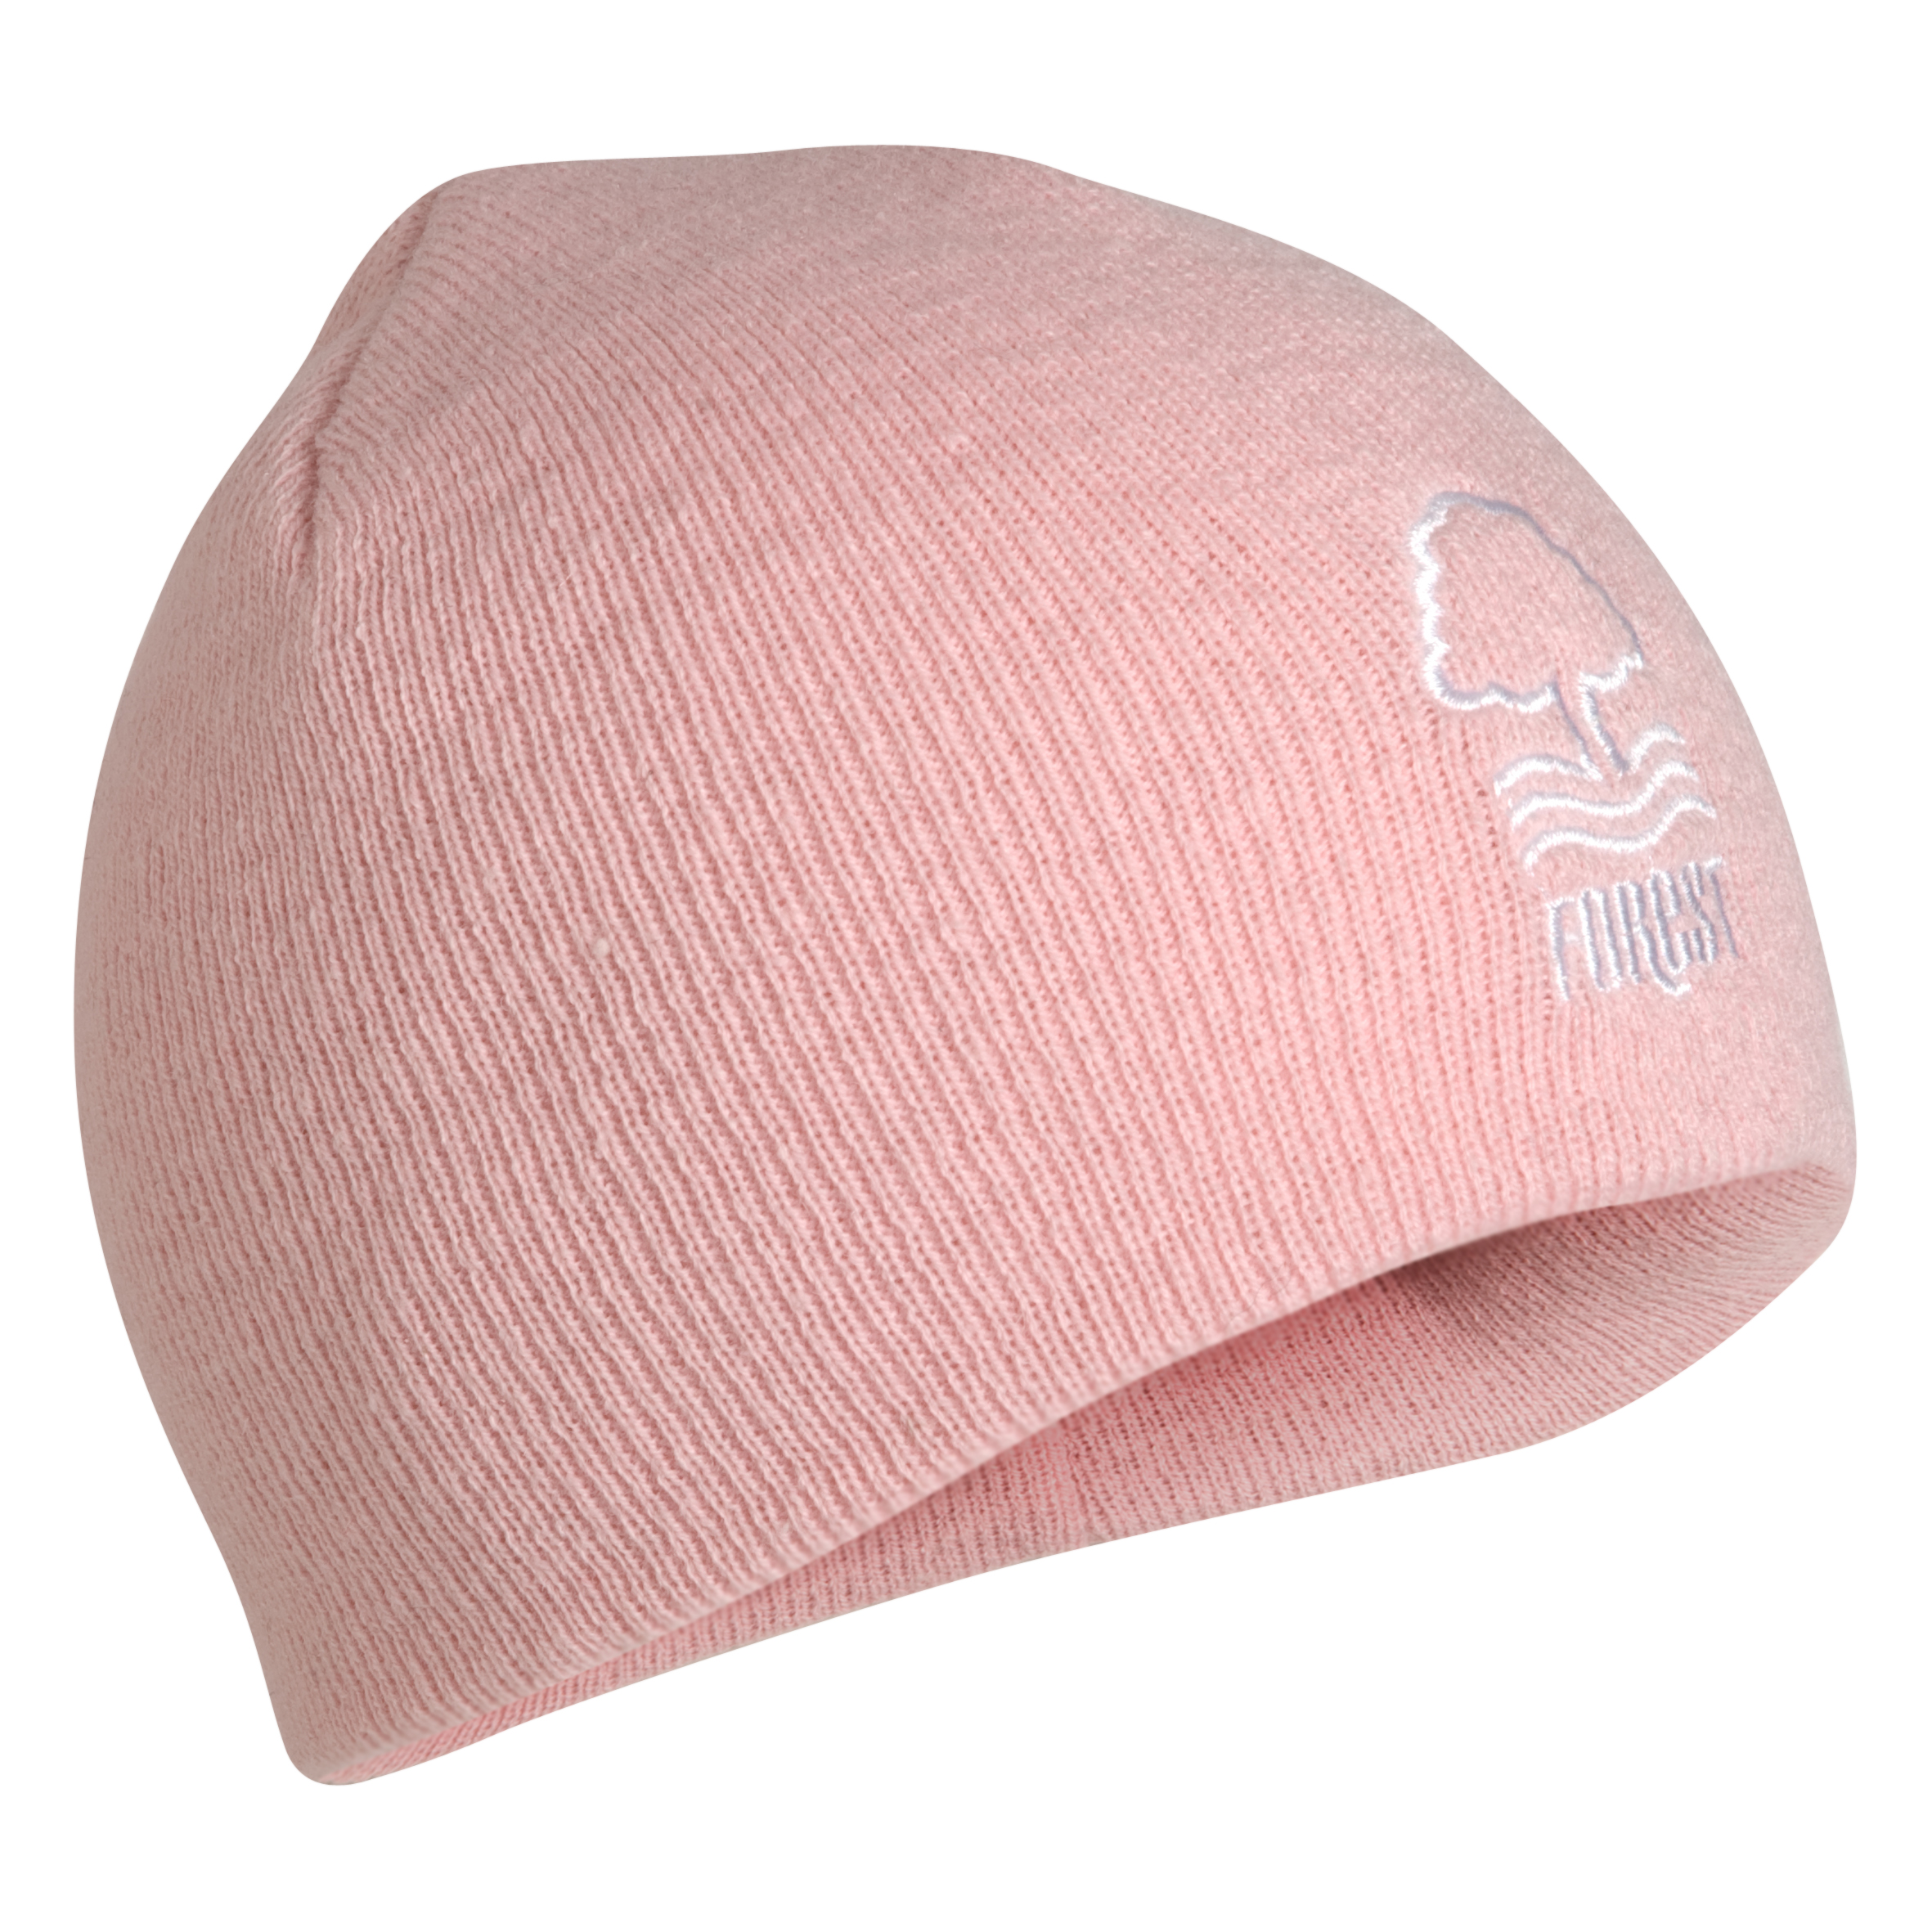 Nottingham Forest Essentials Fleece Lined Beanie Hat - Pink - Girls